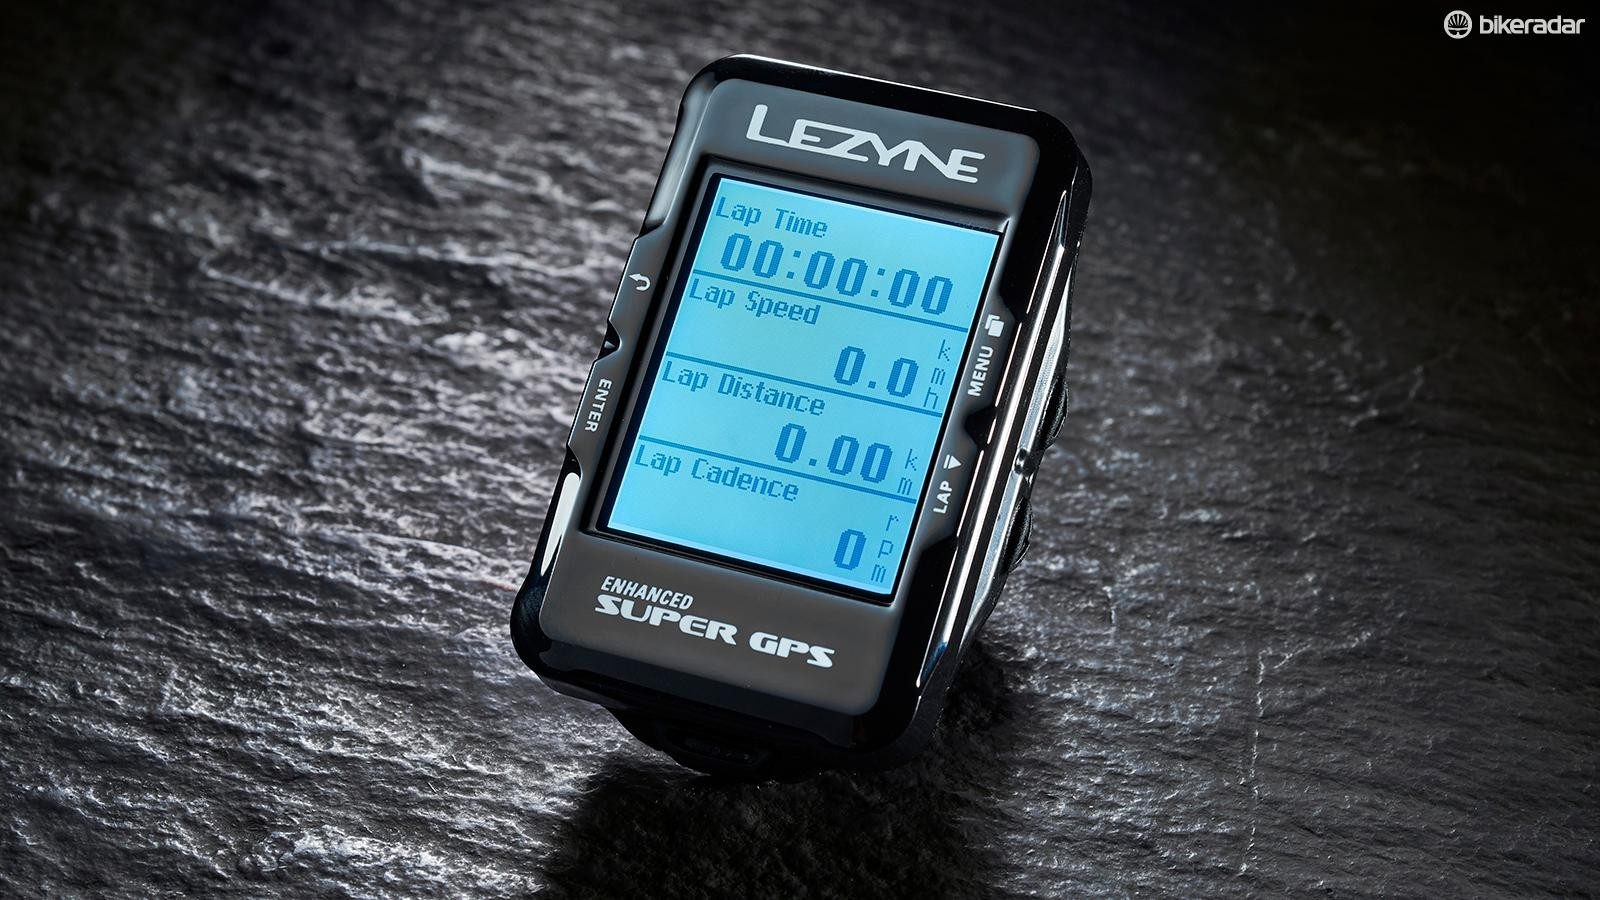 The Lezyne Enhanced Super GPS computer offers good functionality at a great price